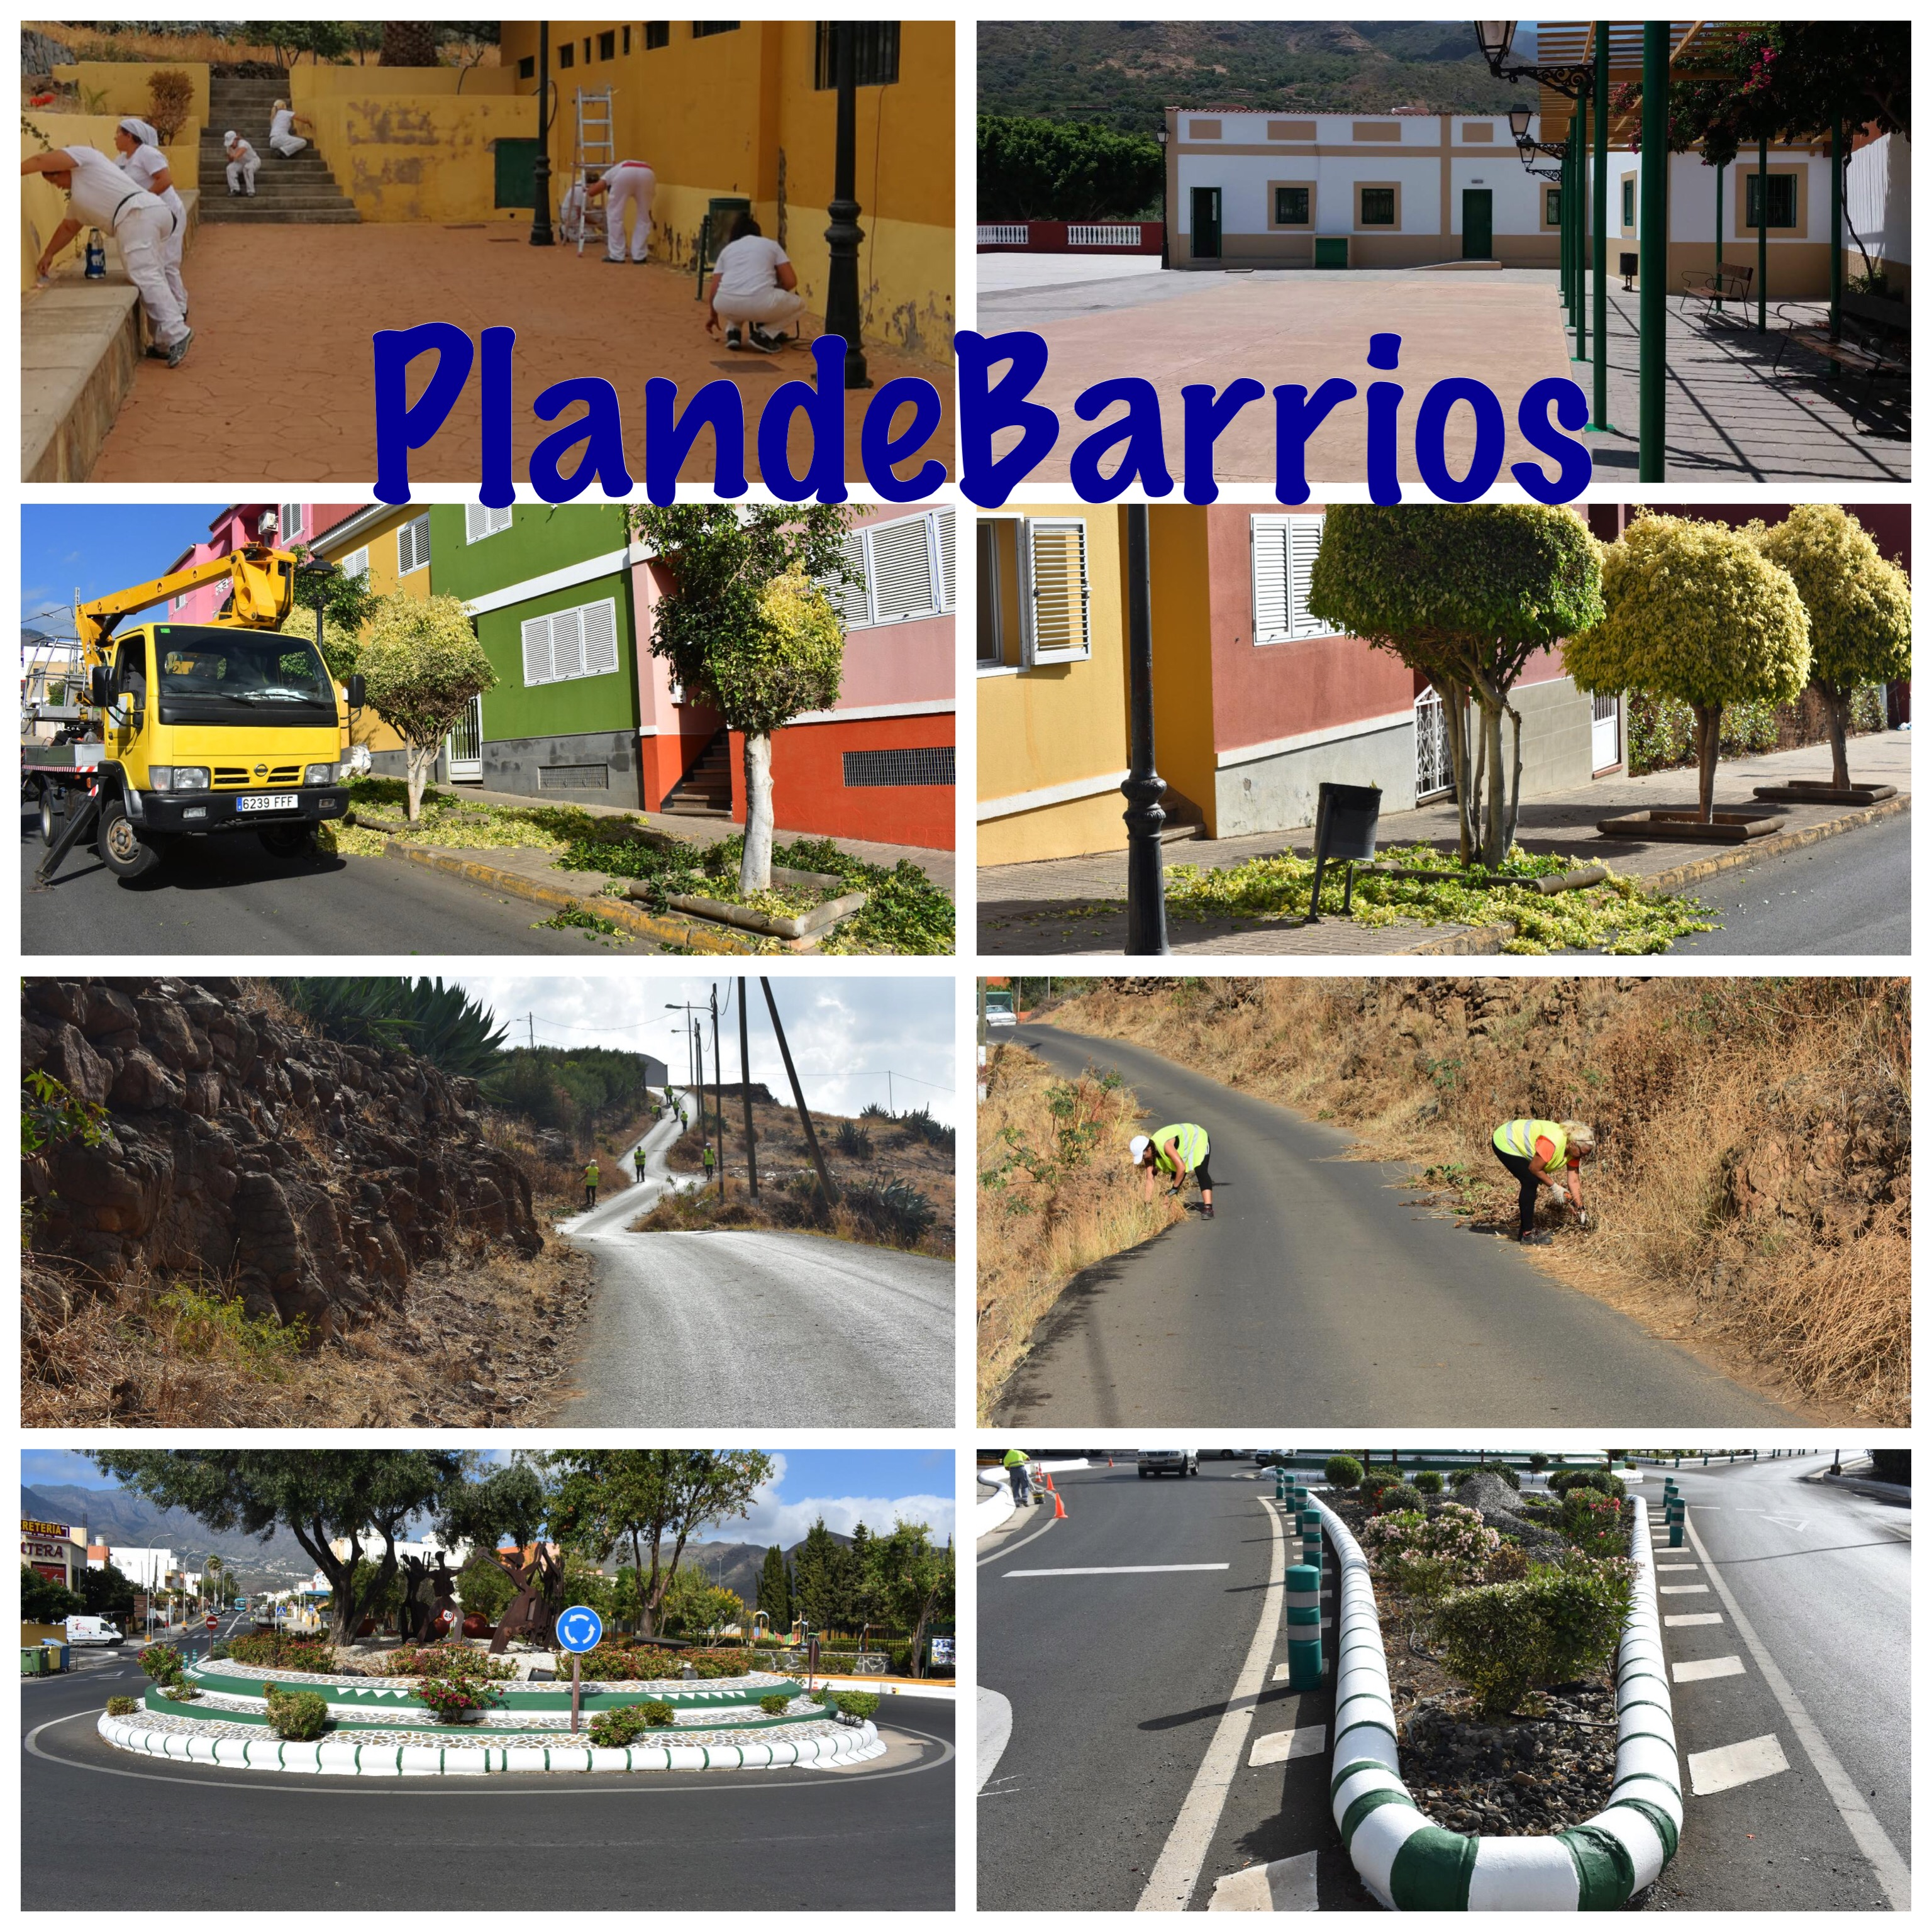 PLAN DE BARRIOS: ACTUANDO POR LOS BARRIOS